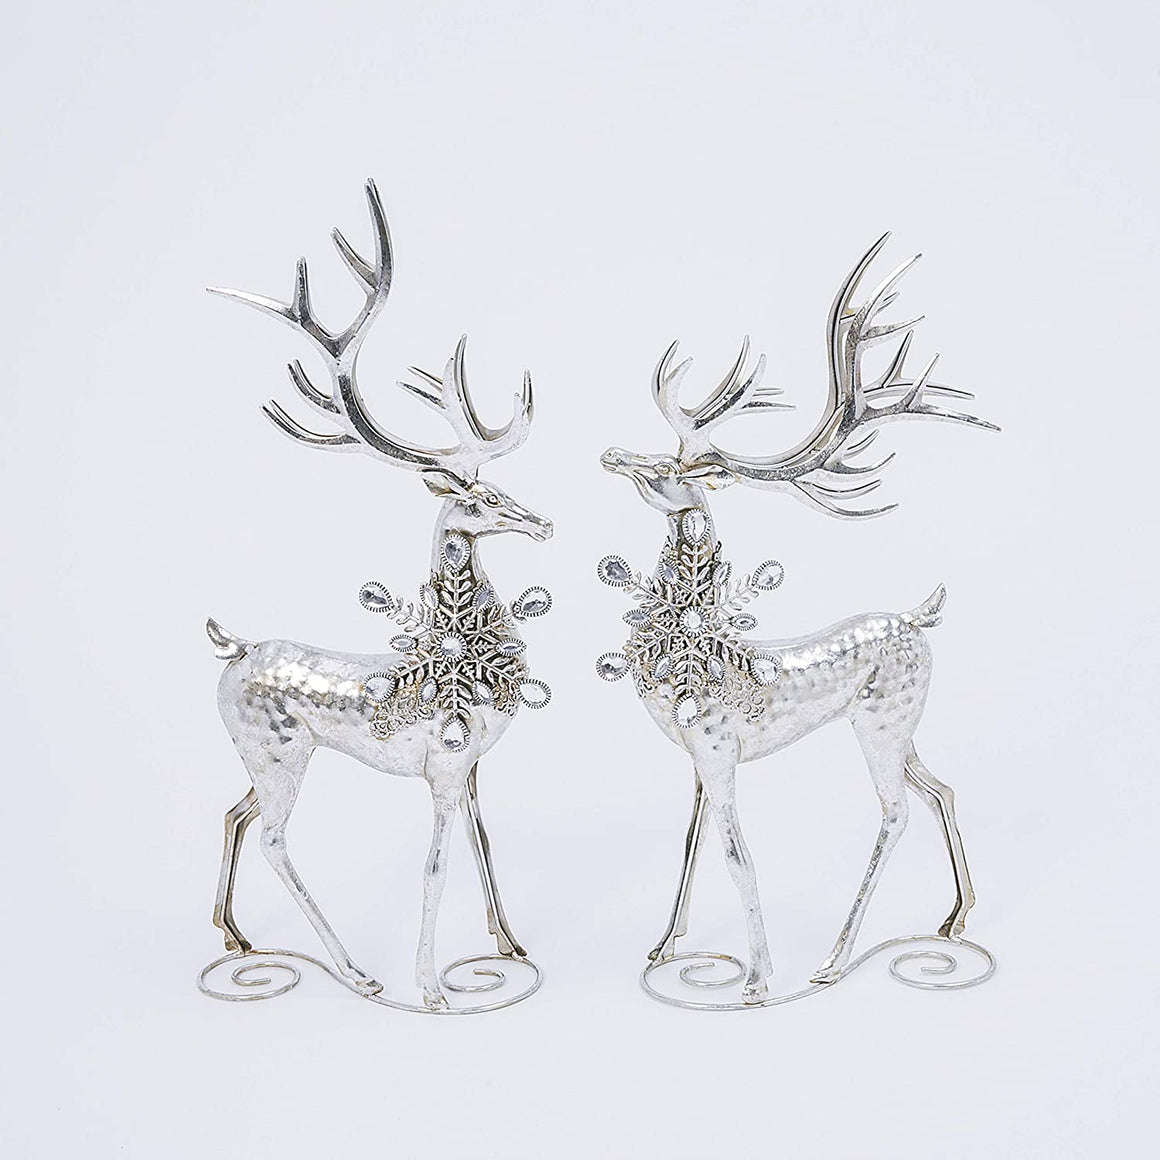 20 Inch High Silver Christmas Deer Set of 2, Decorative Metal Holiday Reindeer